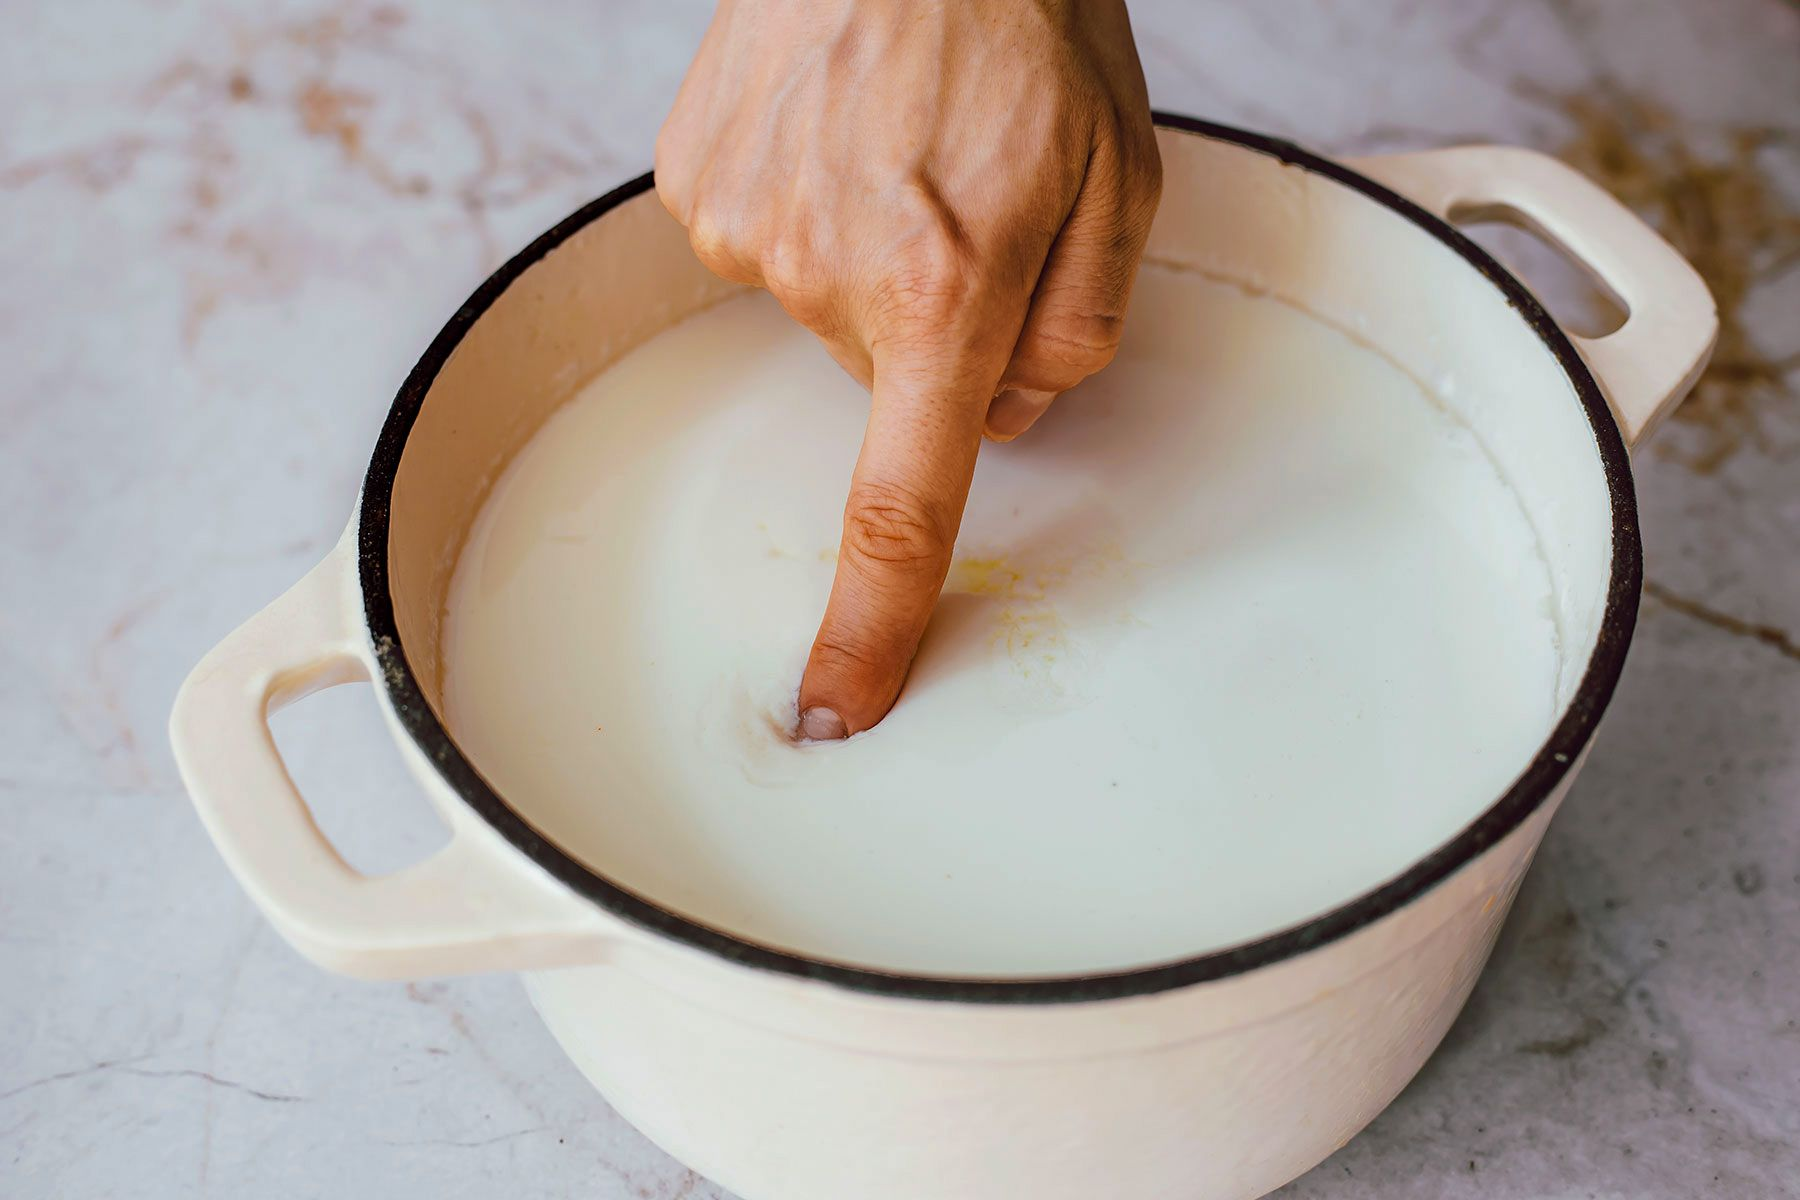 Poke a clean finger about an inch deep into the curd